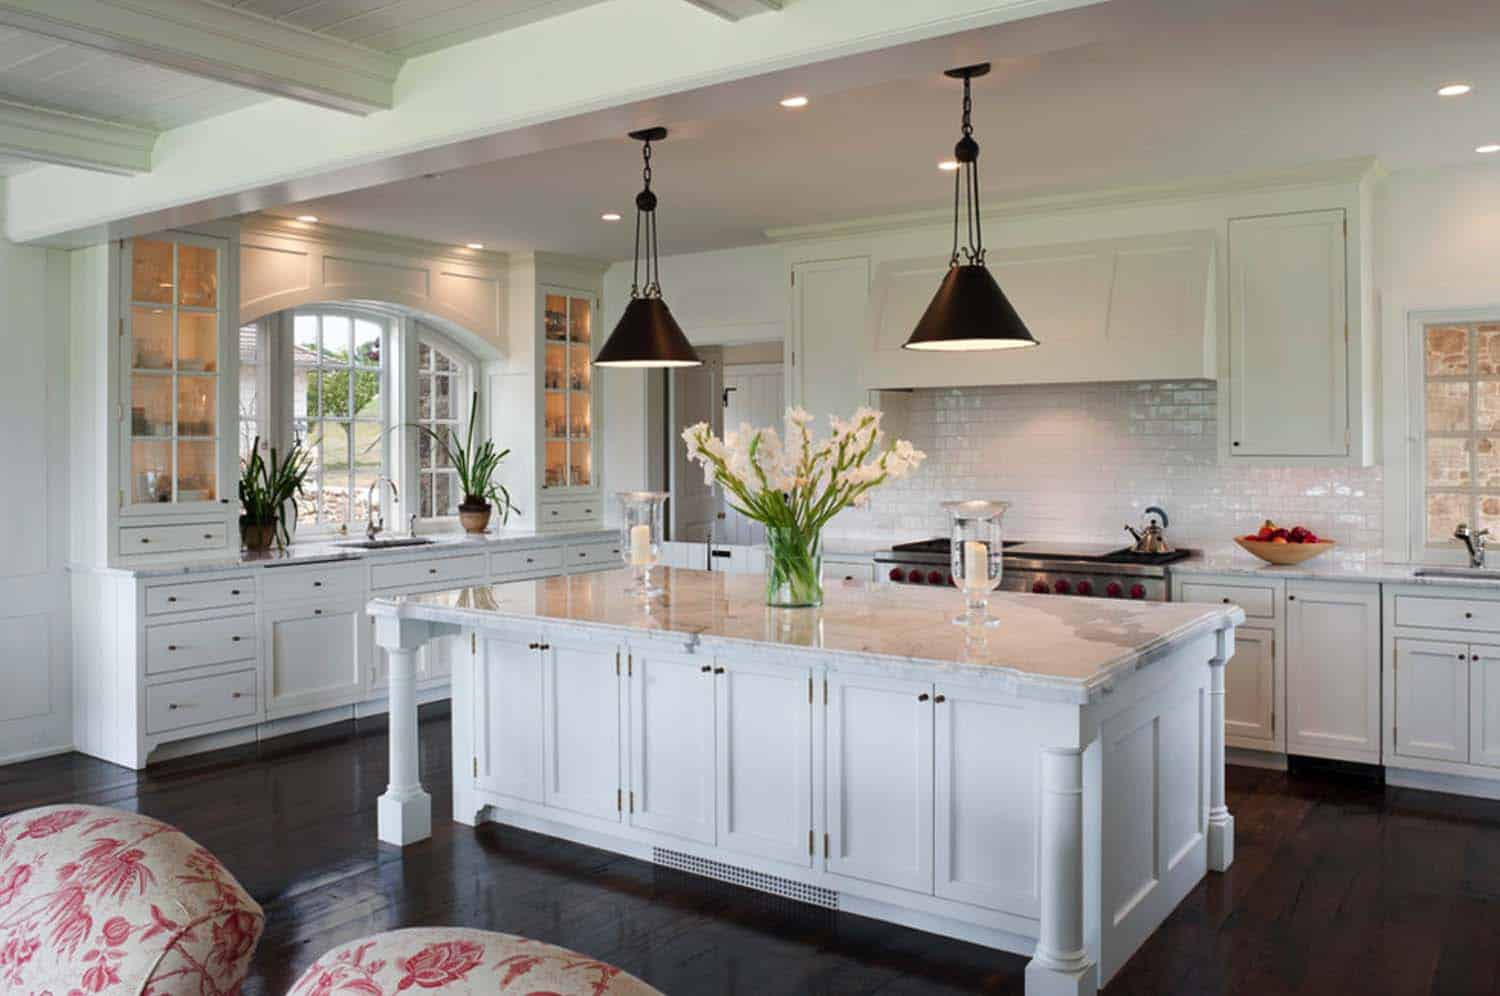 kitchen island options 30 brilliant kitchen island ideas that make a statement 6166